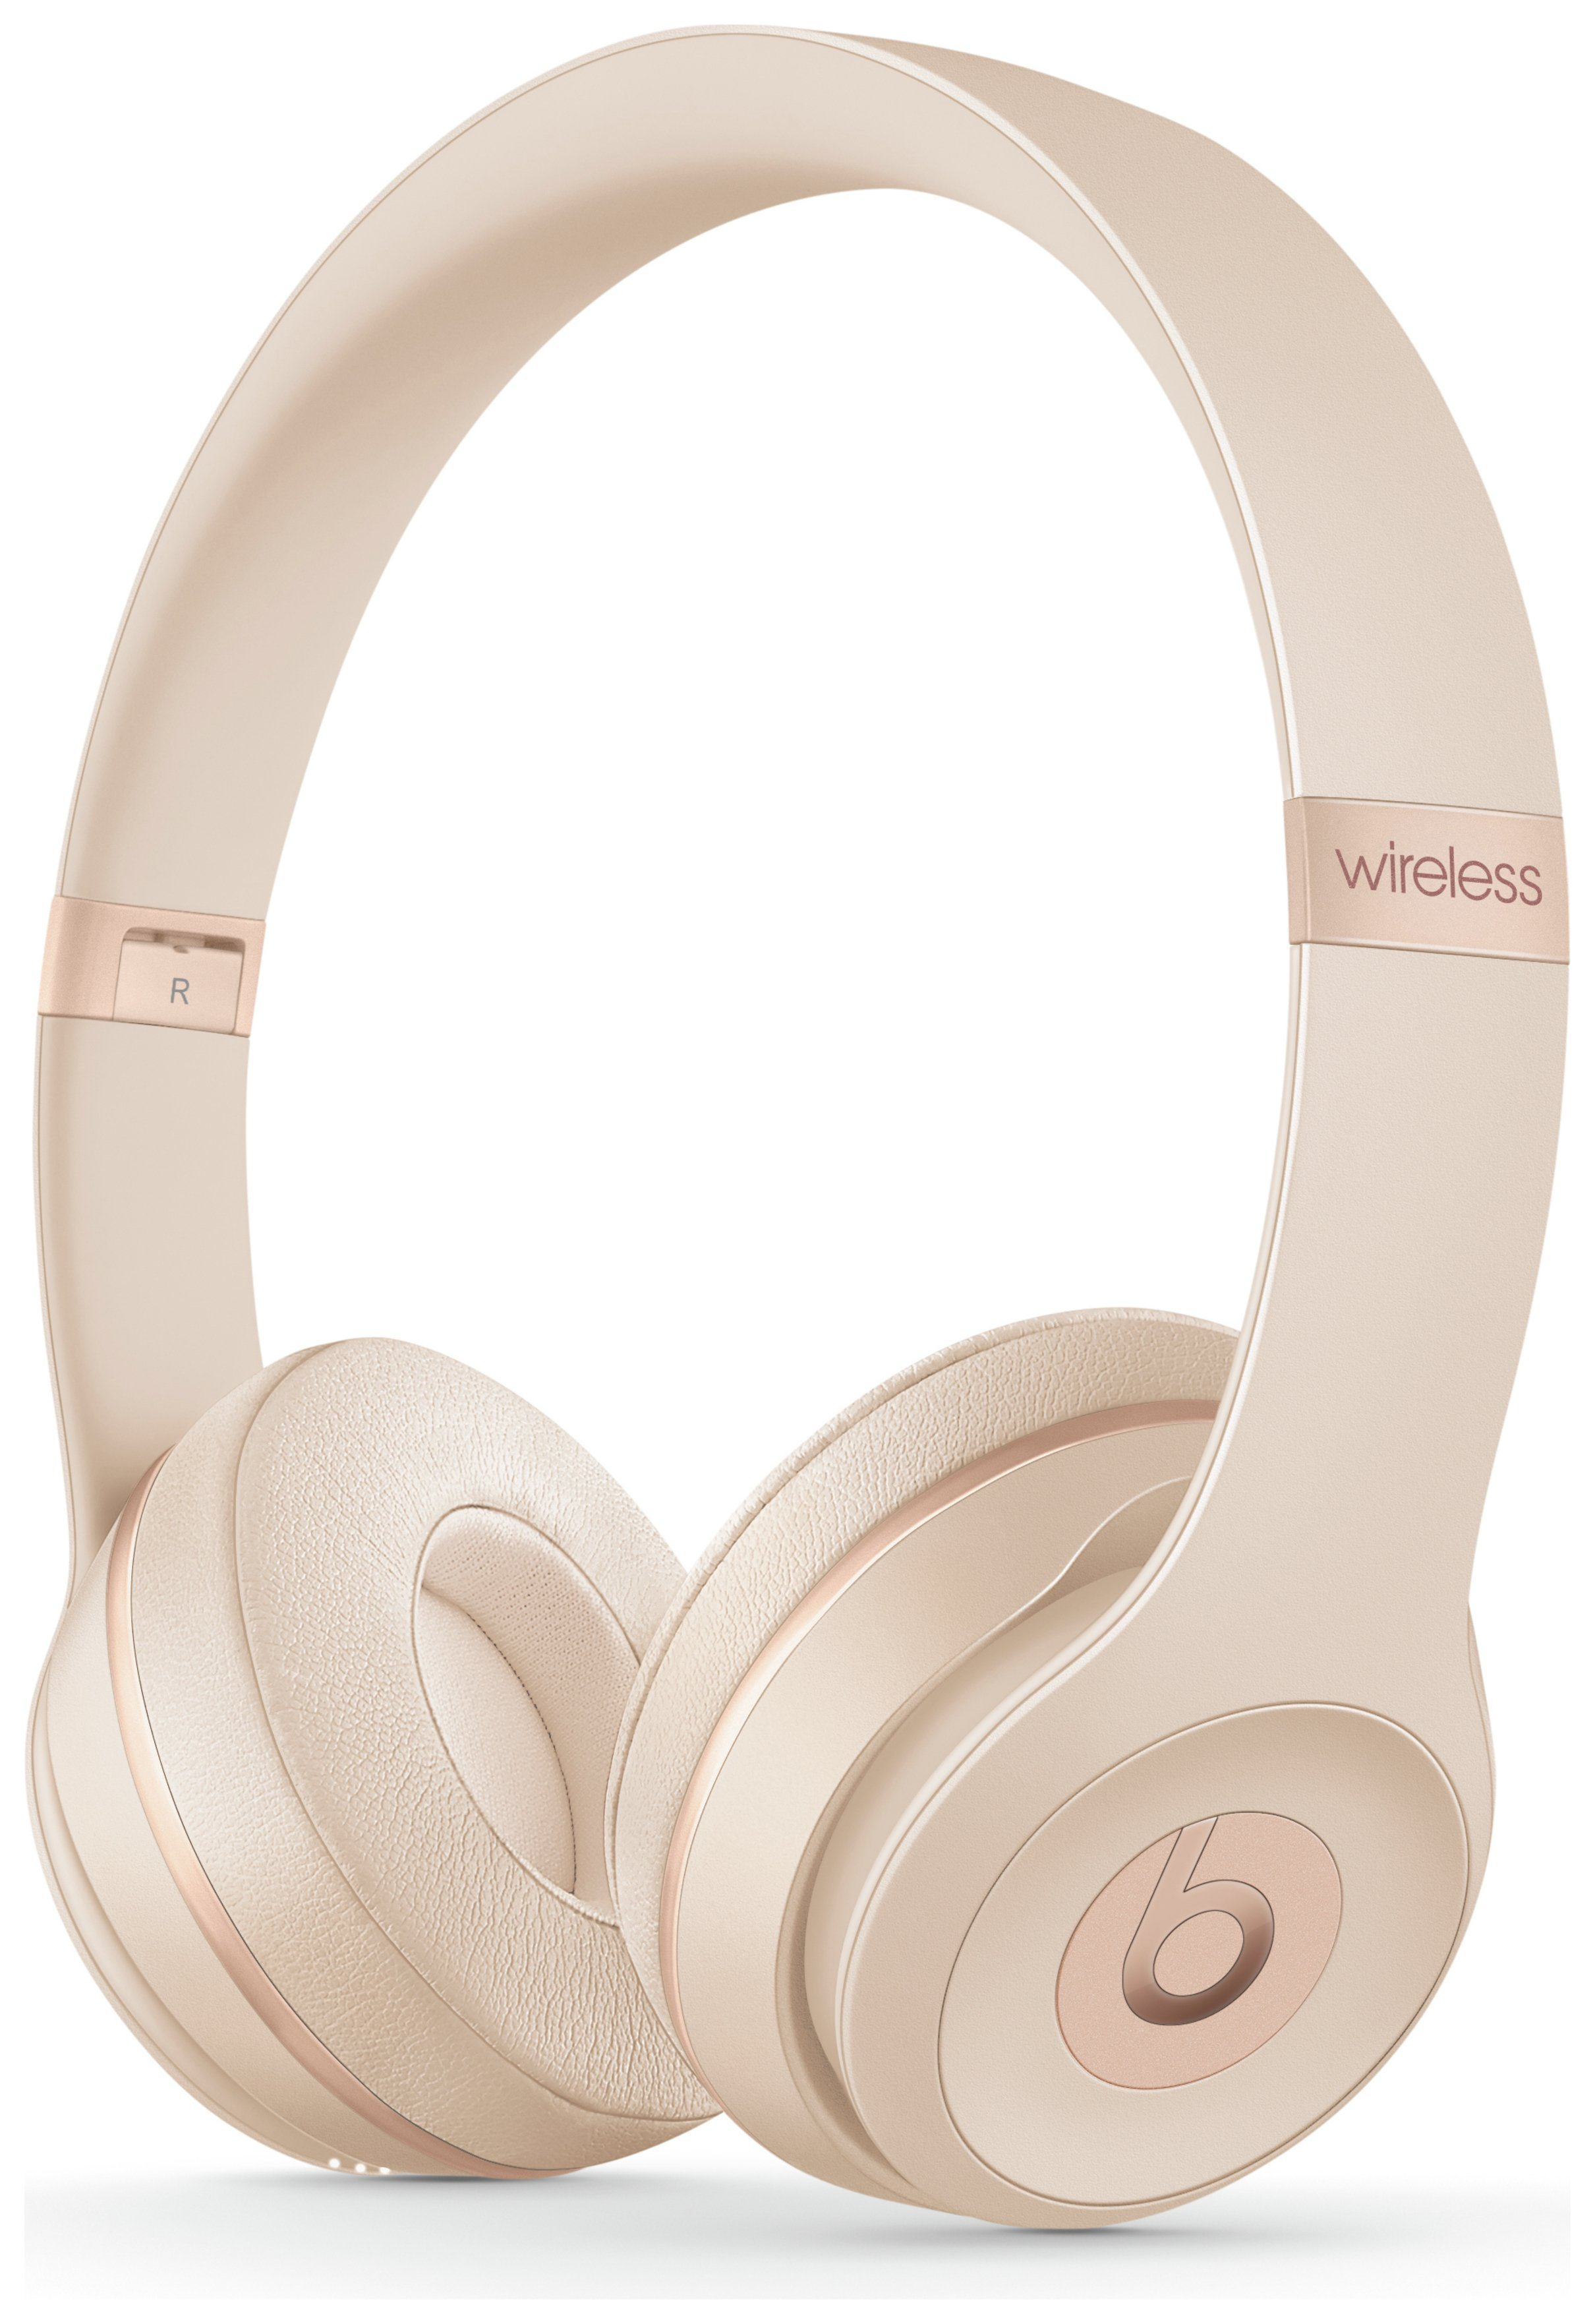 Beats by Dre Solo 3 On-Ear Wireless Headphones - Matt Gold